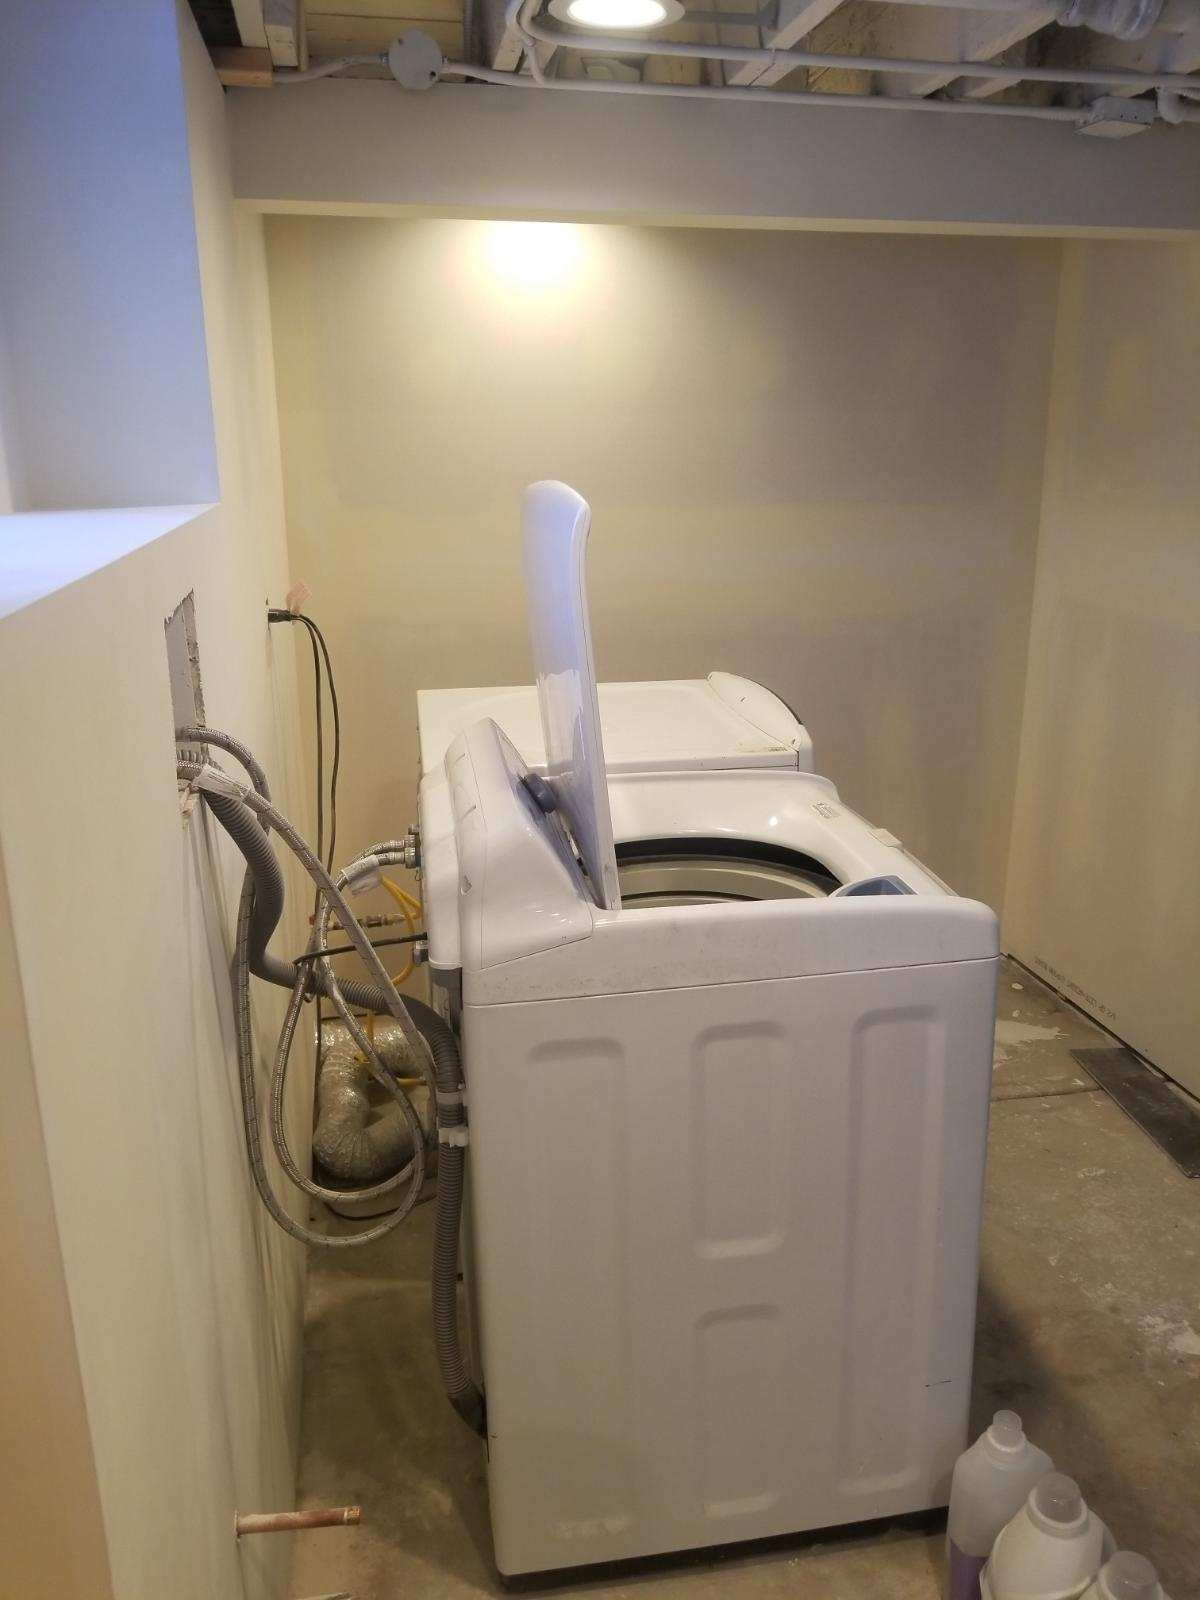 New Laundry Room In Basement Wheaton Drywall Repair Painting Amp Remodeling Naperville